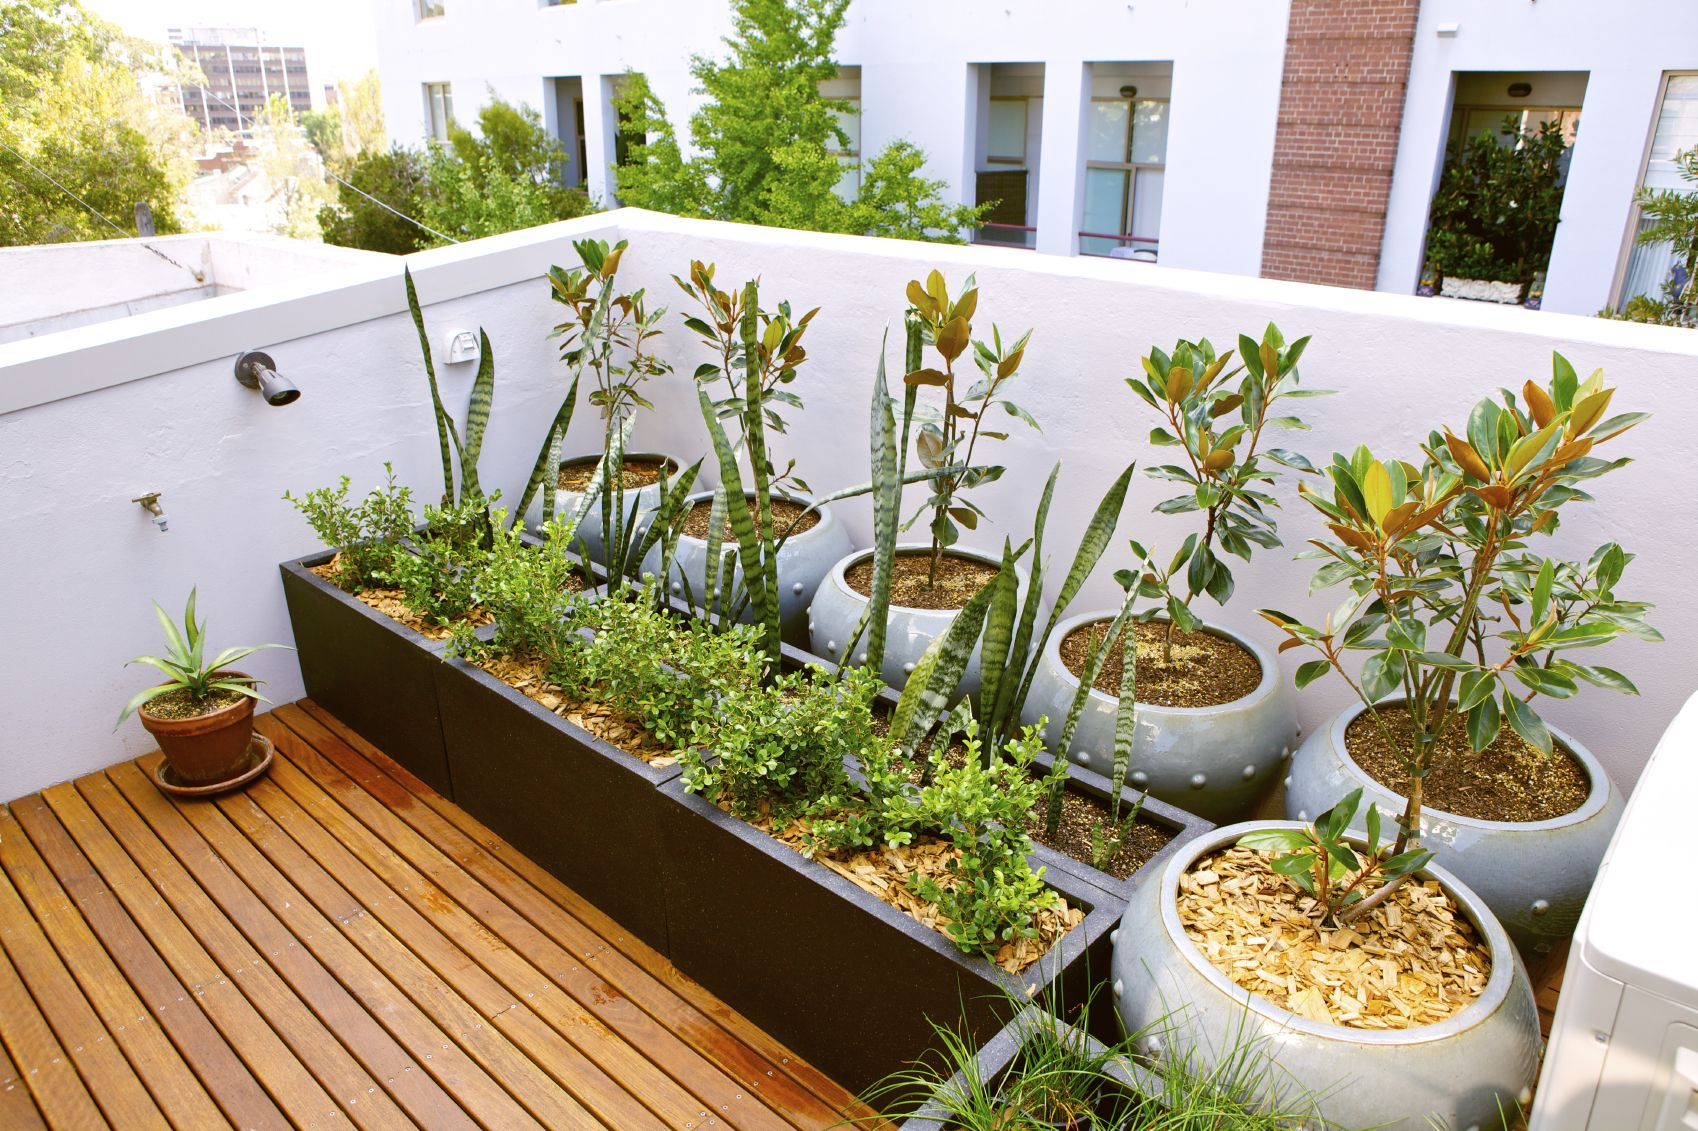 17 Best 1000 images about Roof Garden on Pinterest Gardens Rooftop